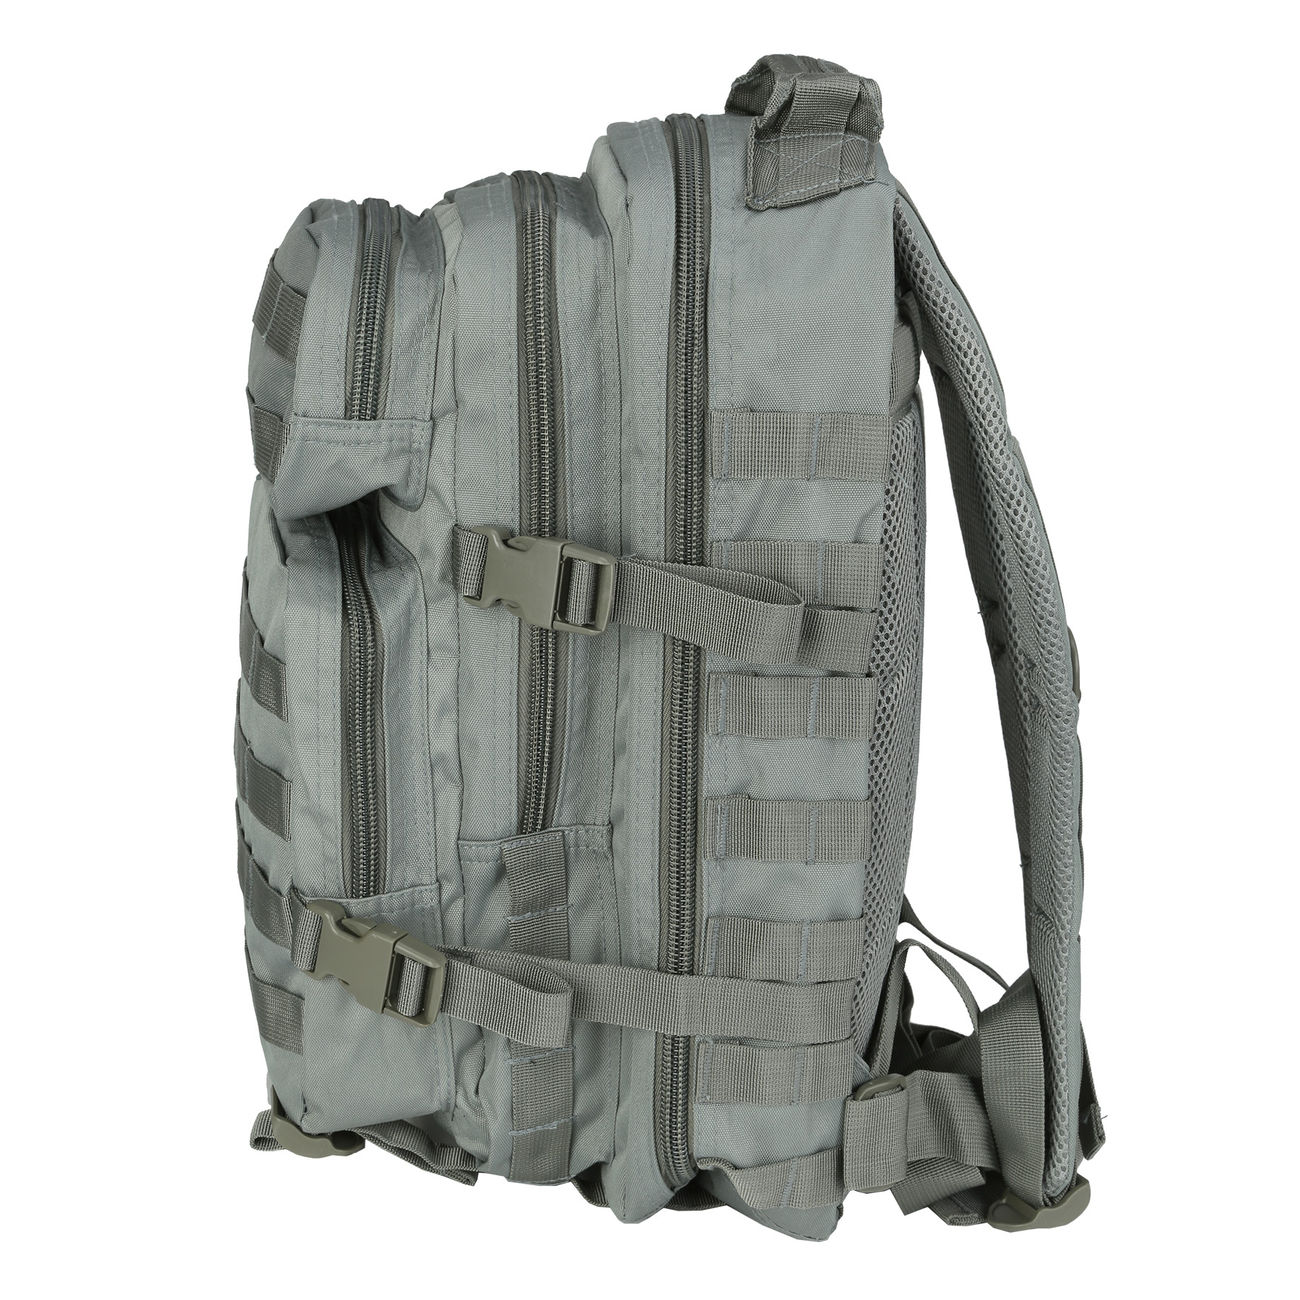 Mil-Tec Rucksack US Assault Pack I 20 Liter foliage 2